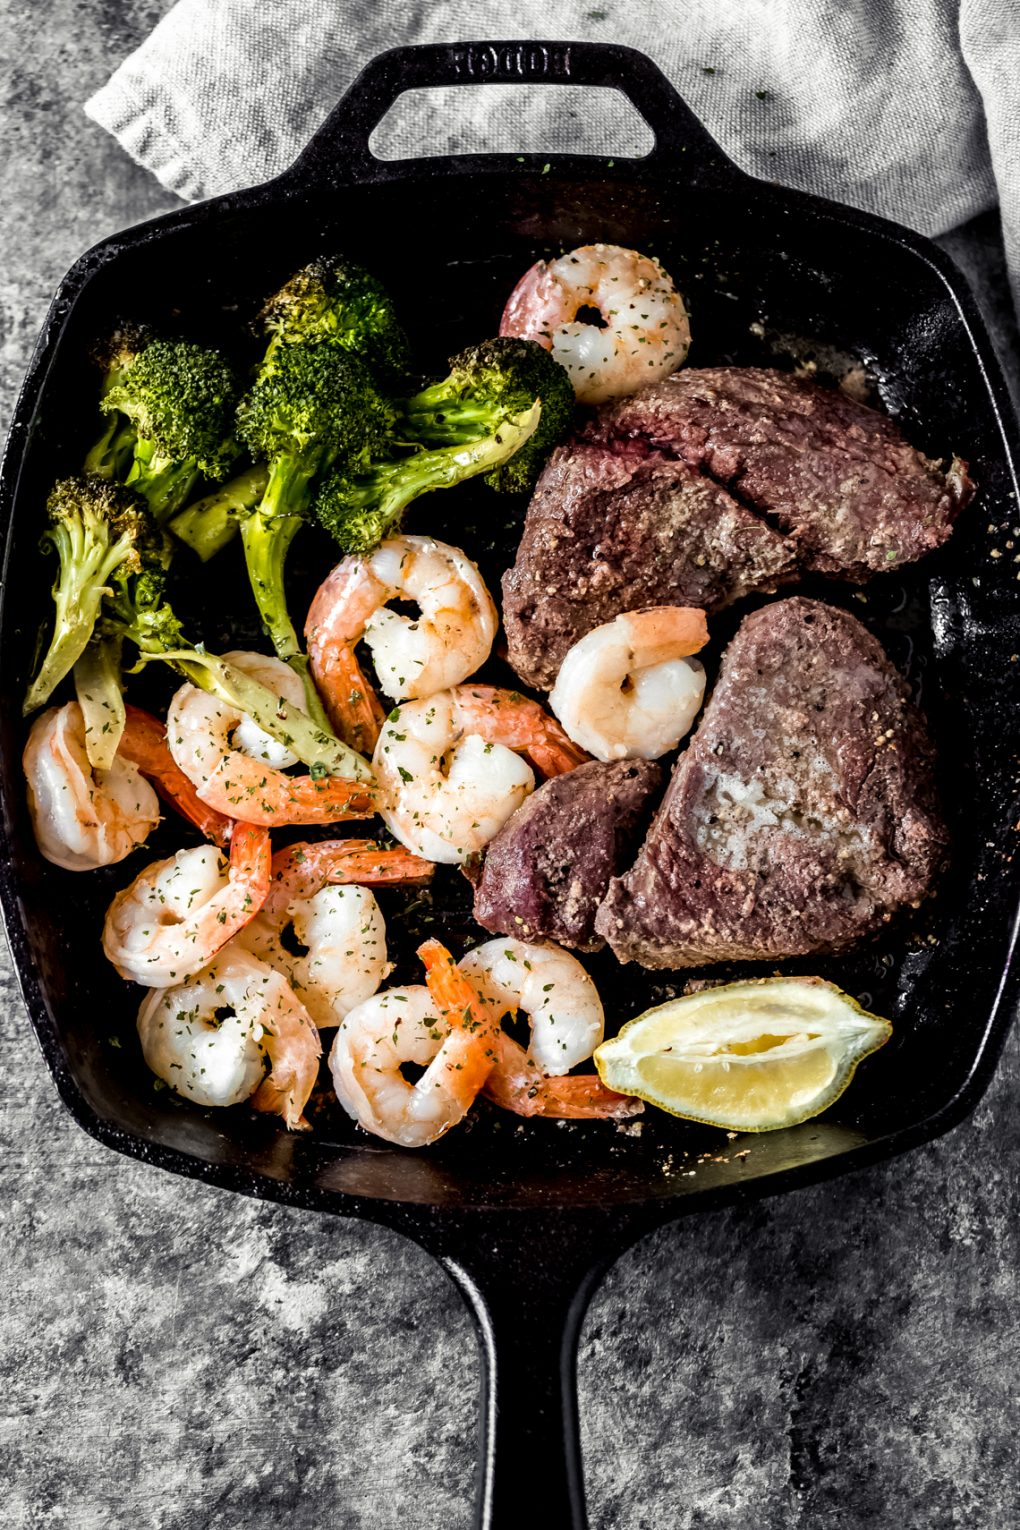 Smoked elk steak and shrimp in a cast iron skillet